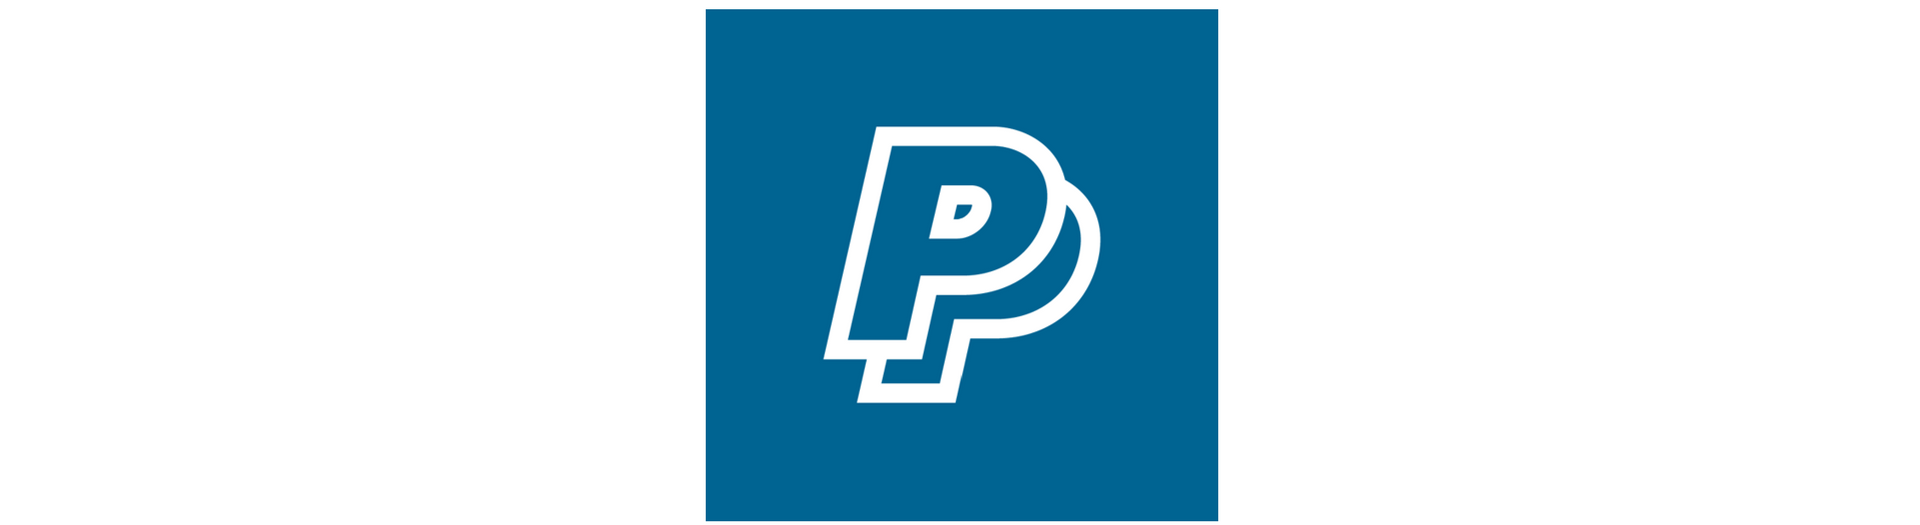 paypal_icon.png